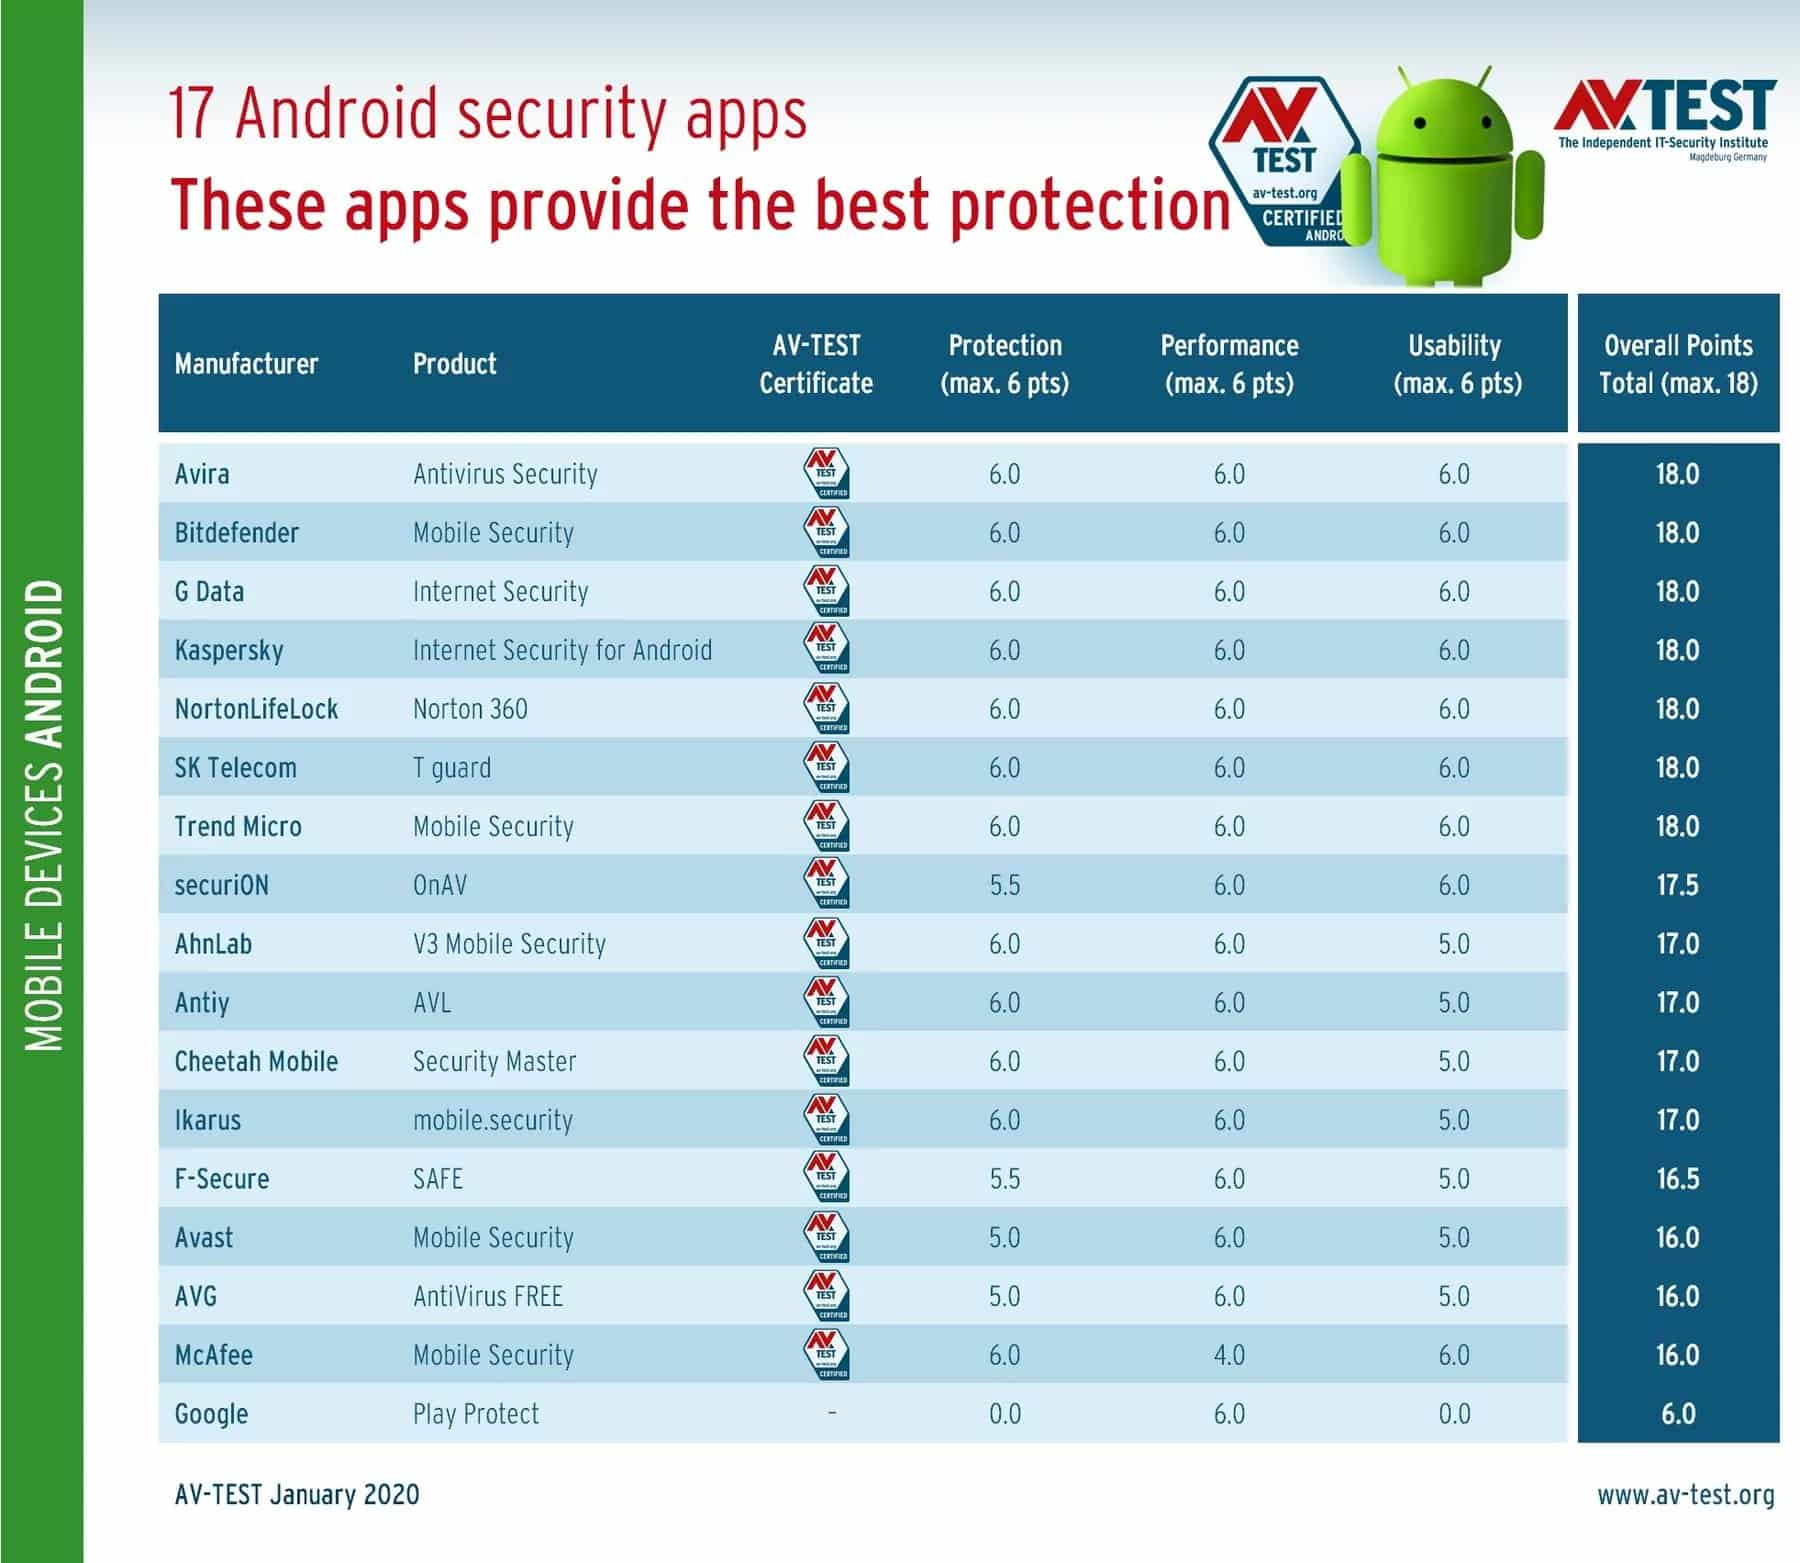 Google Play Protect failed Android device protection test